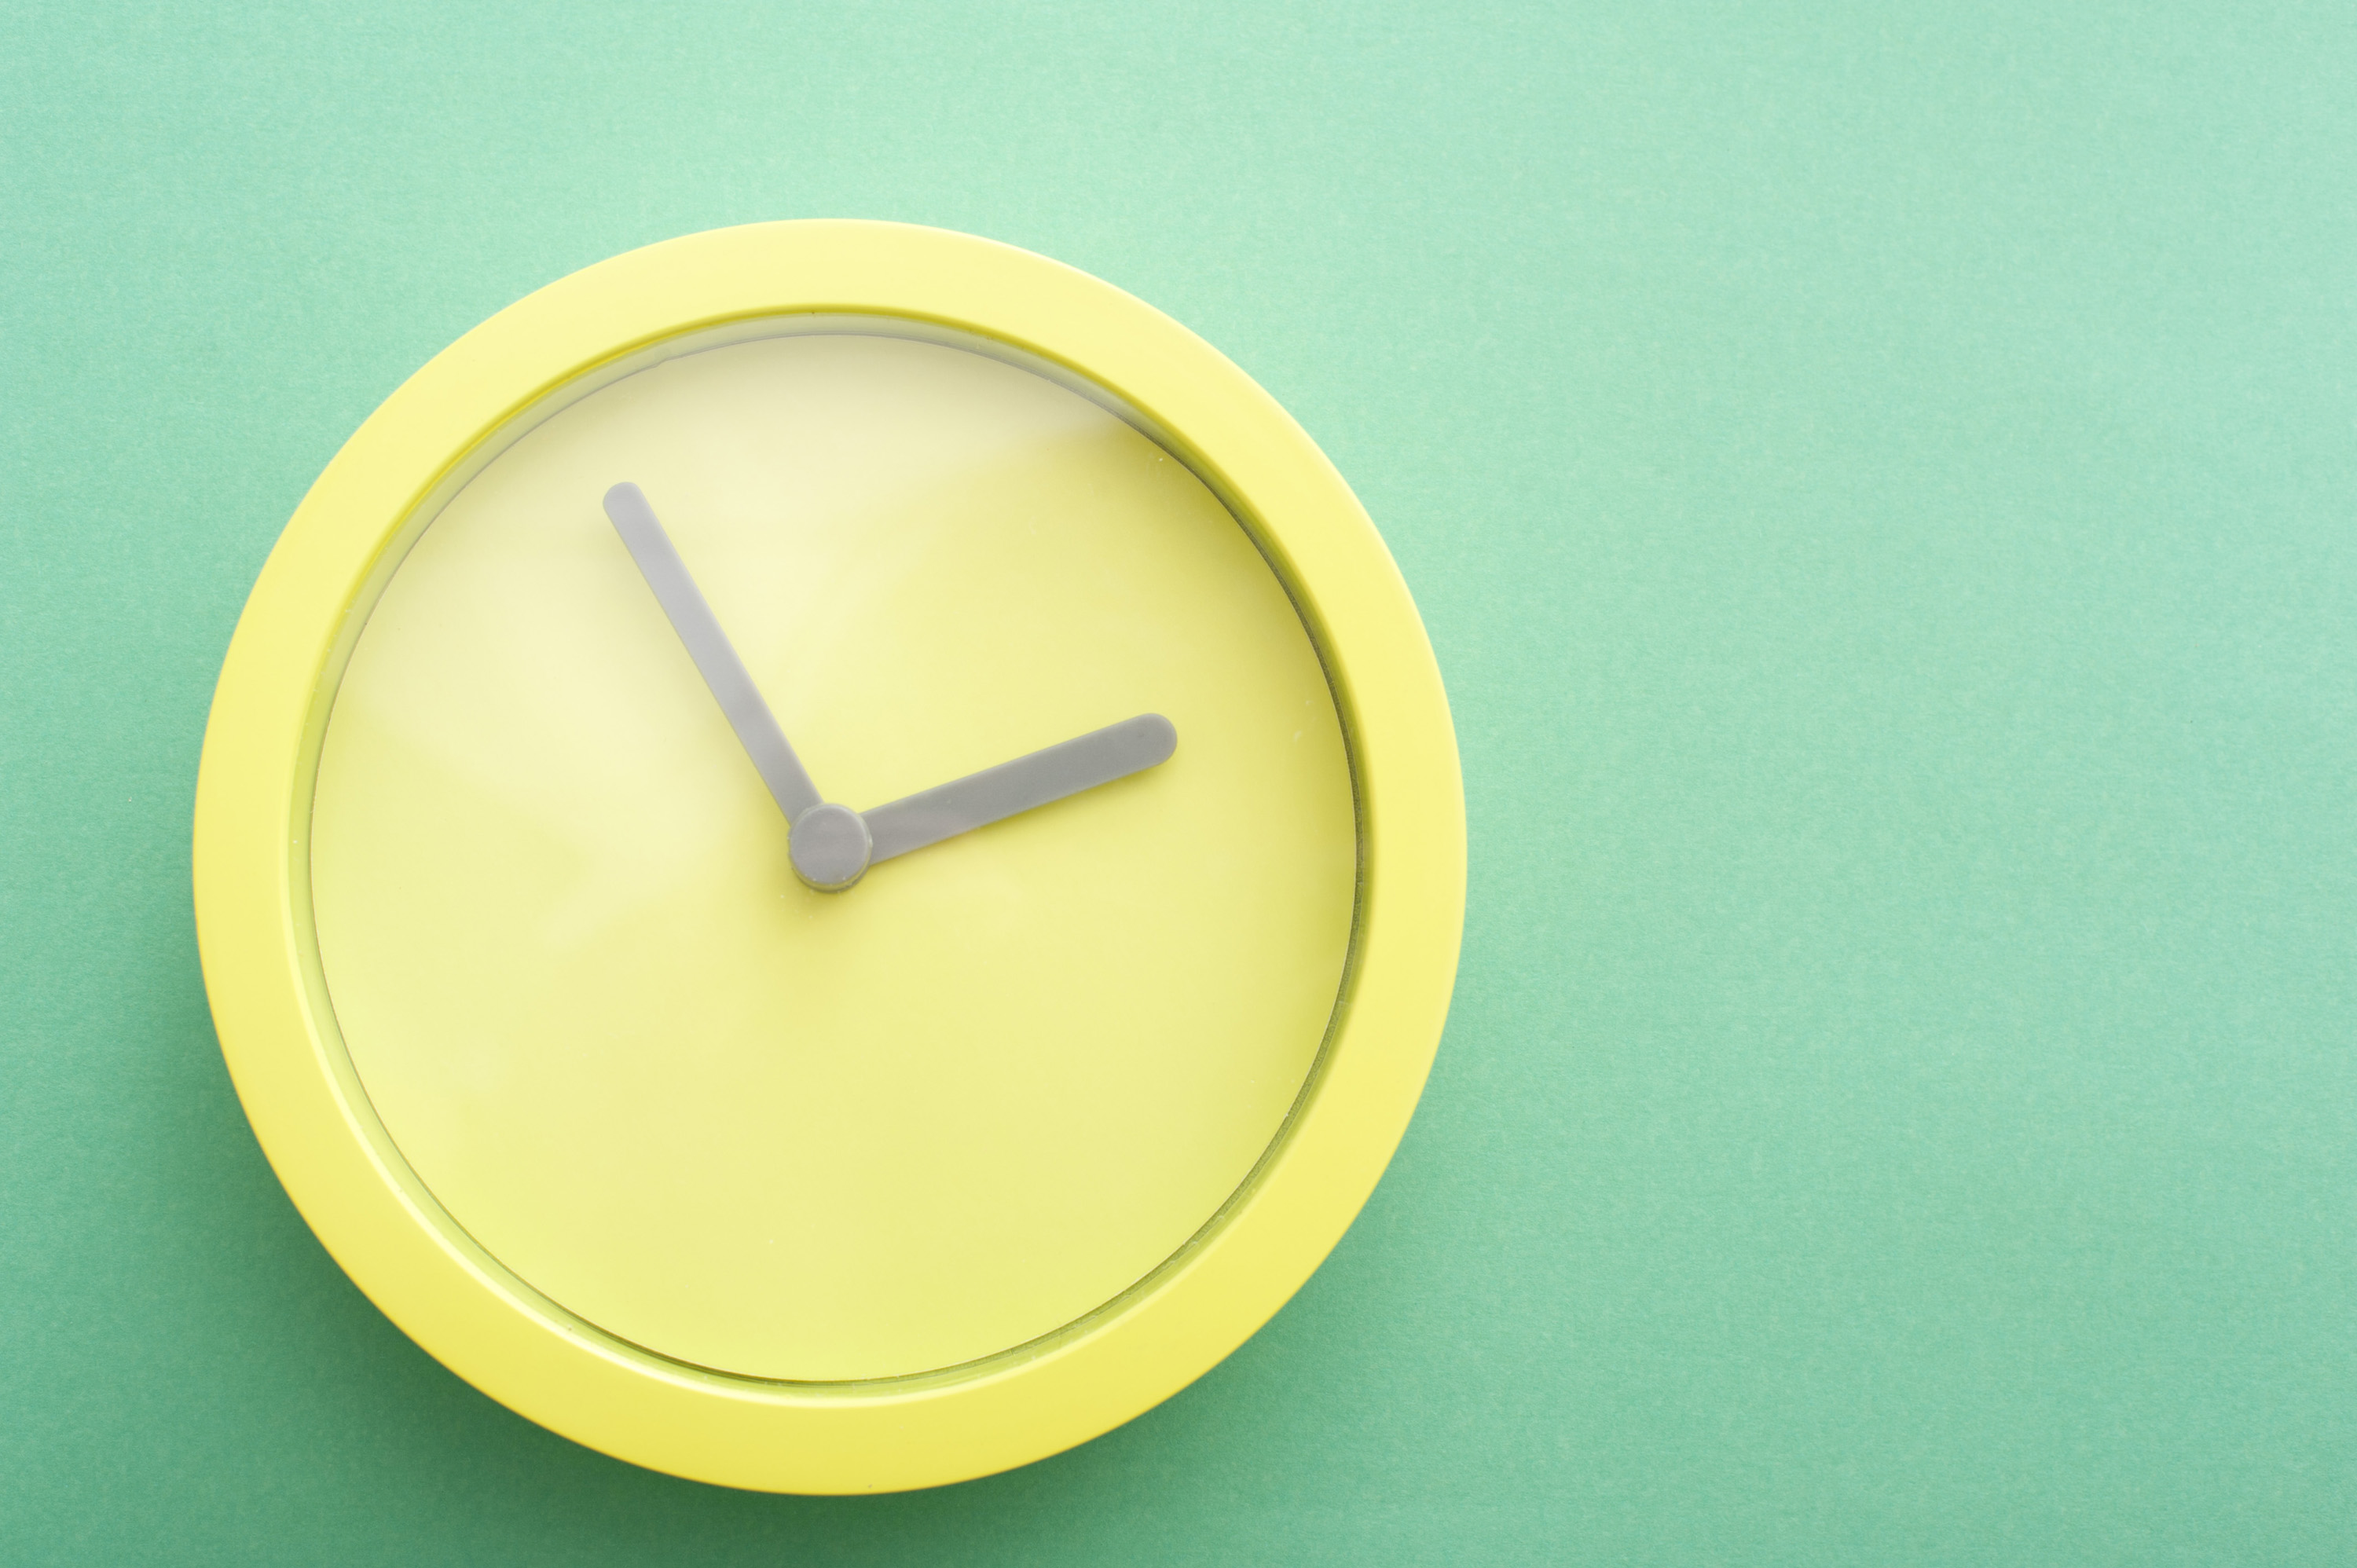 time_concept.jpg - Springtime concept: Modern minimalist yellow round clock or timer with no numbers on a green background